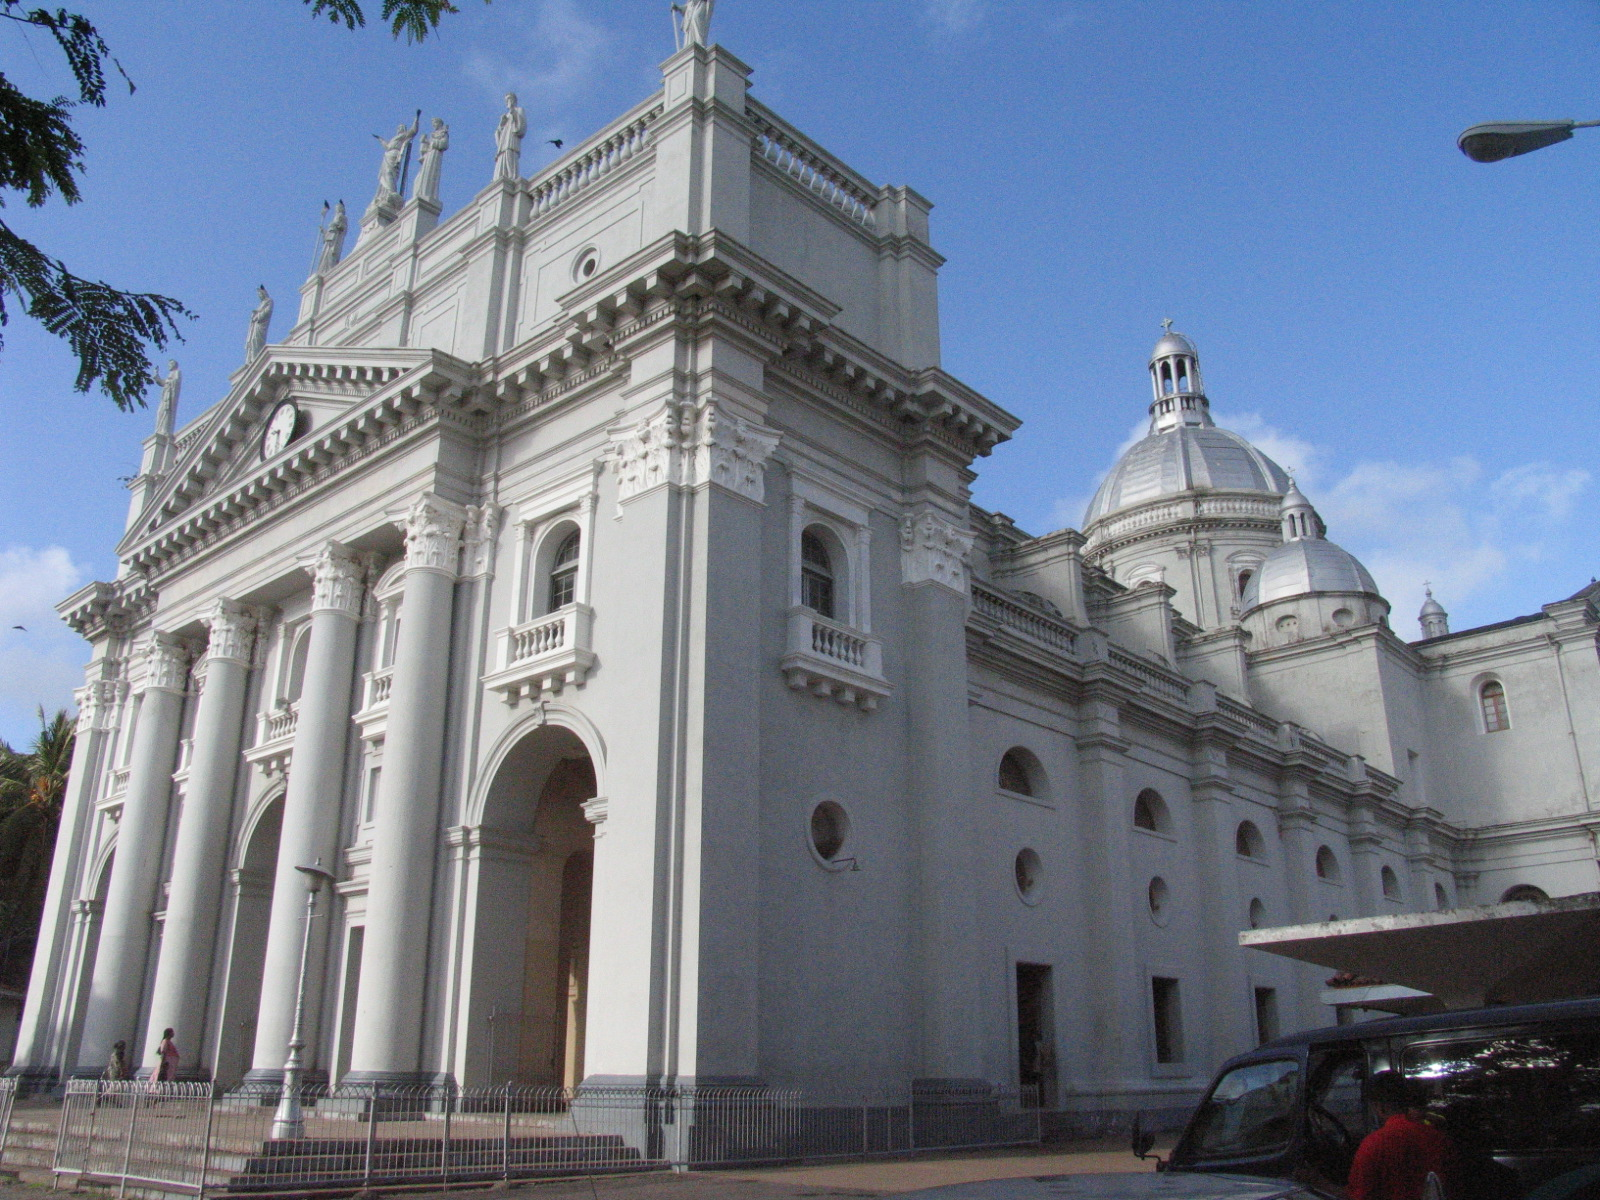 St Lucia's Cathedral Colombo, Sri Lanka is Paradise: St. Lucia's Cathedral